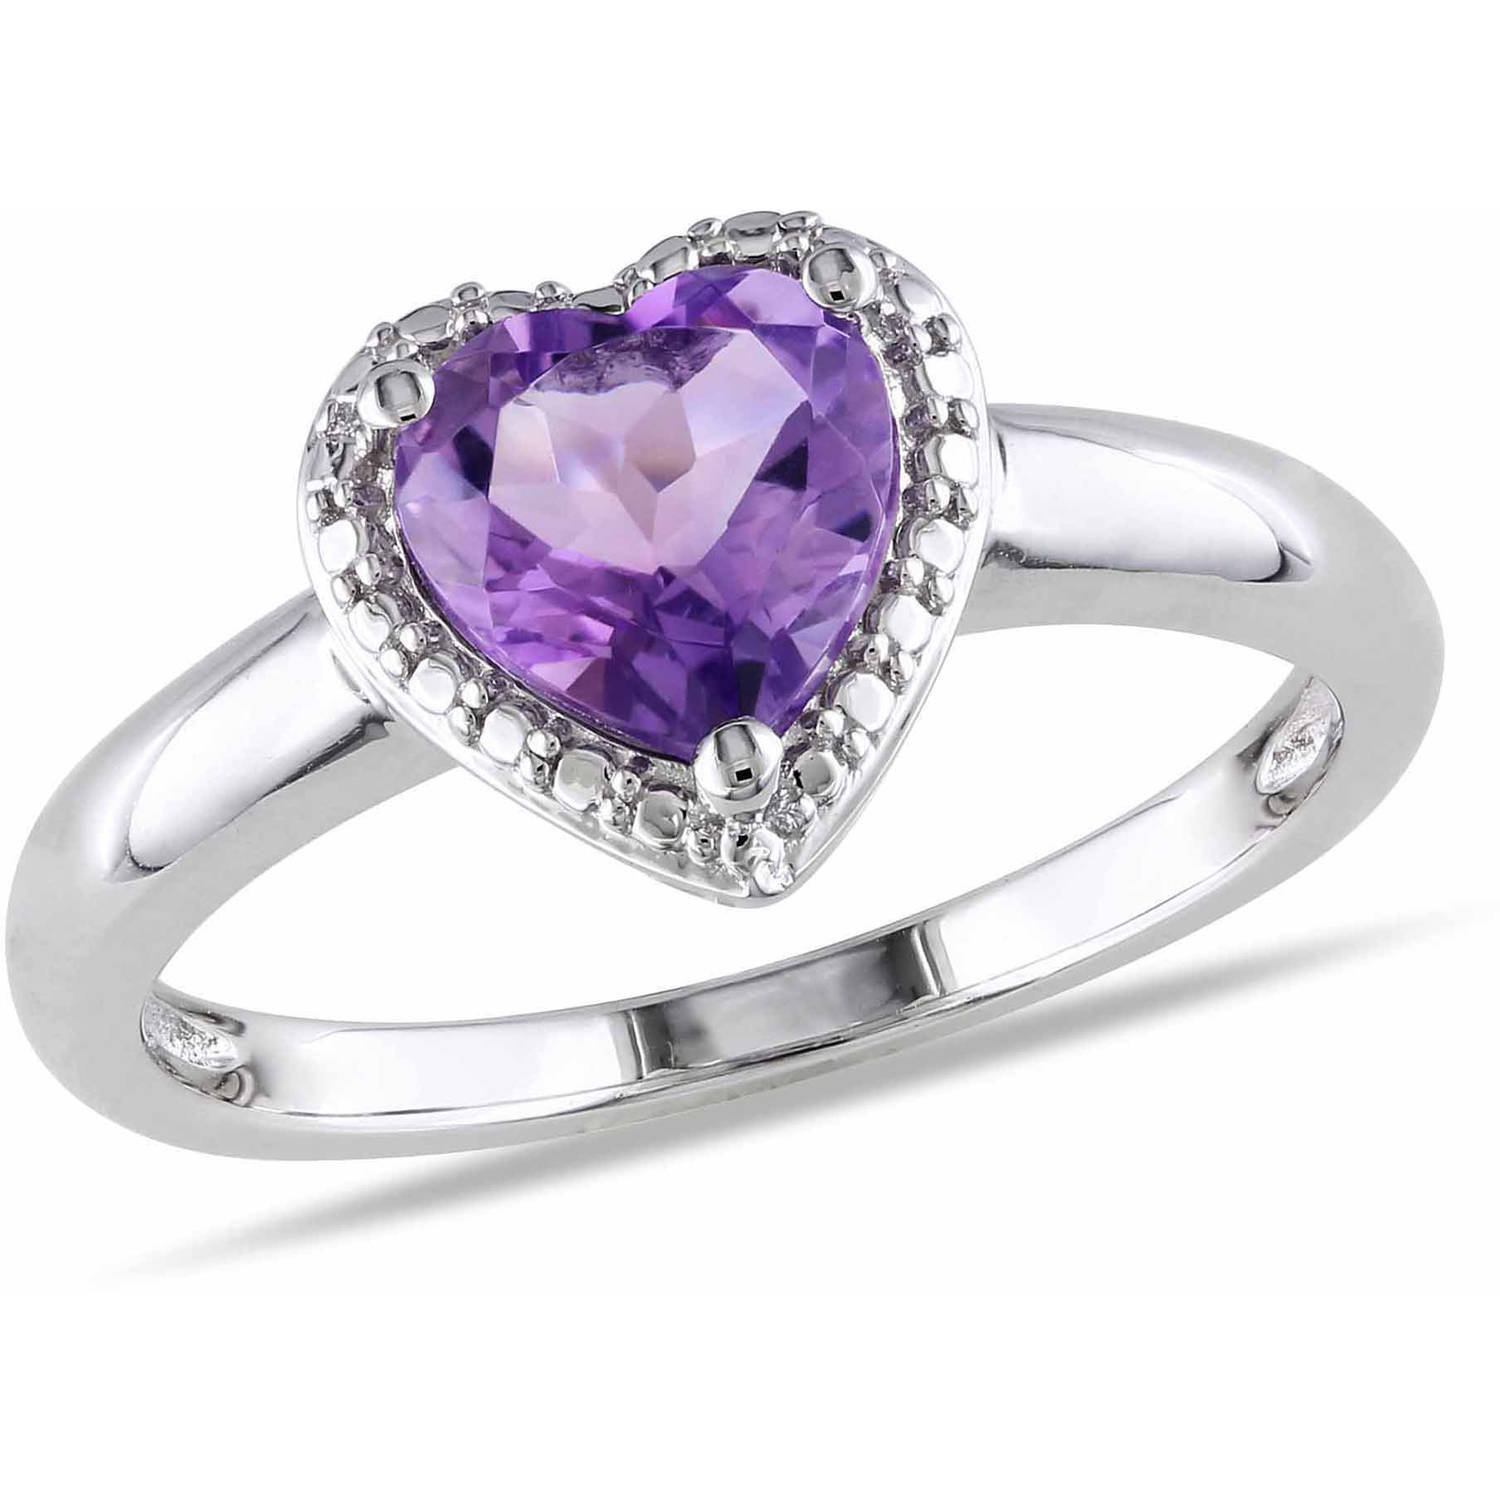 Tangelo 1 Carat T.G.W. Amethyst Sterling Silver Heart Ring by Delmar Manufacturing LLC